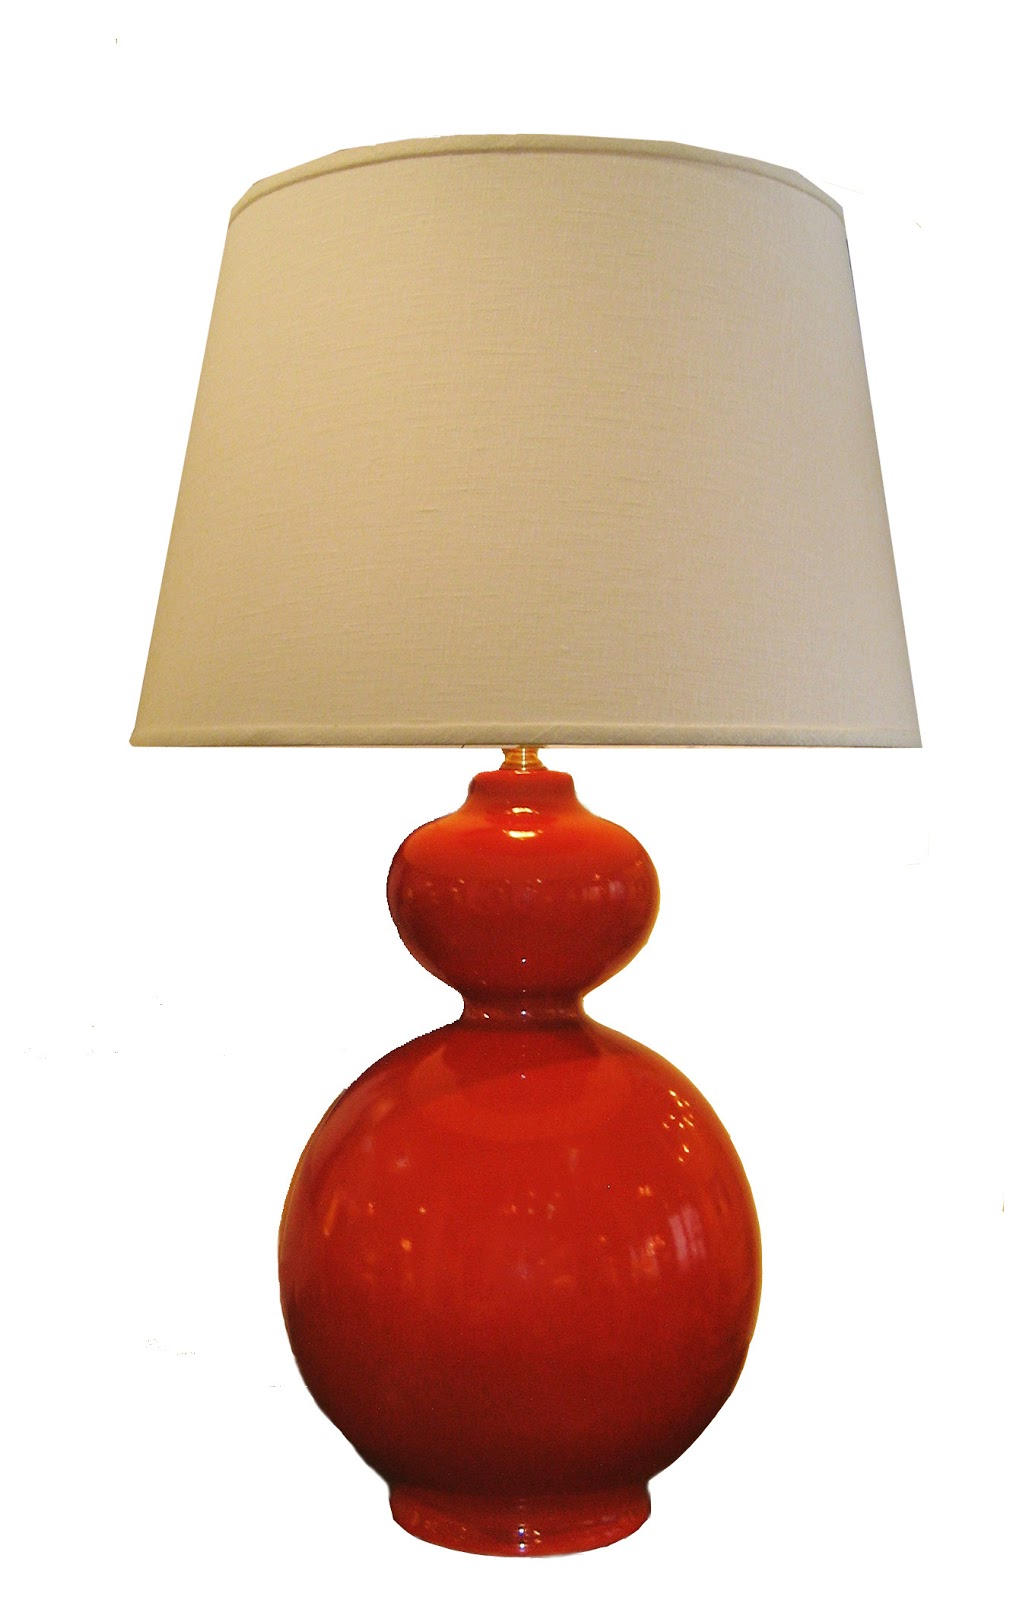 1000 images about stephen gerould lamps at nicky rising ltd on pinterest handmade ceramic - Hand made lamps ...